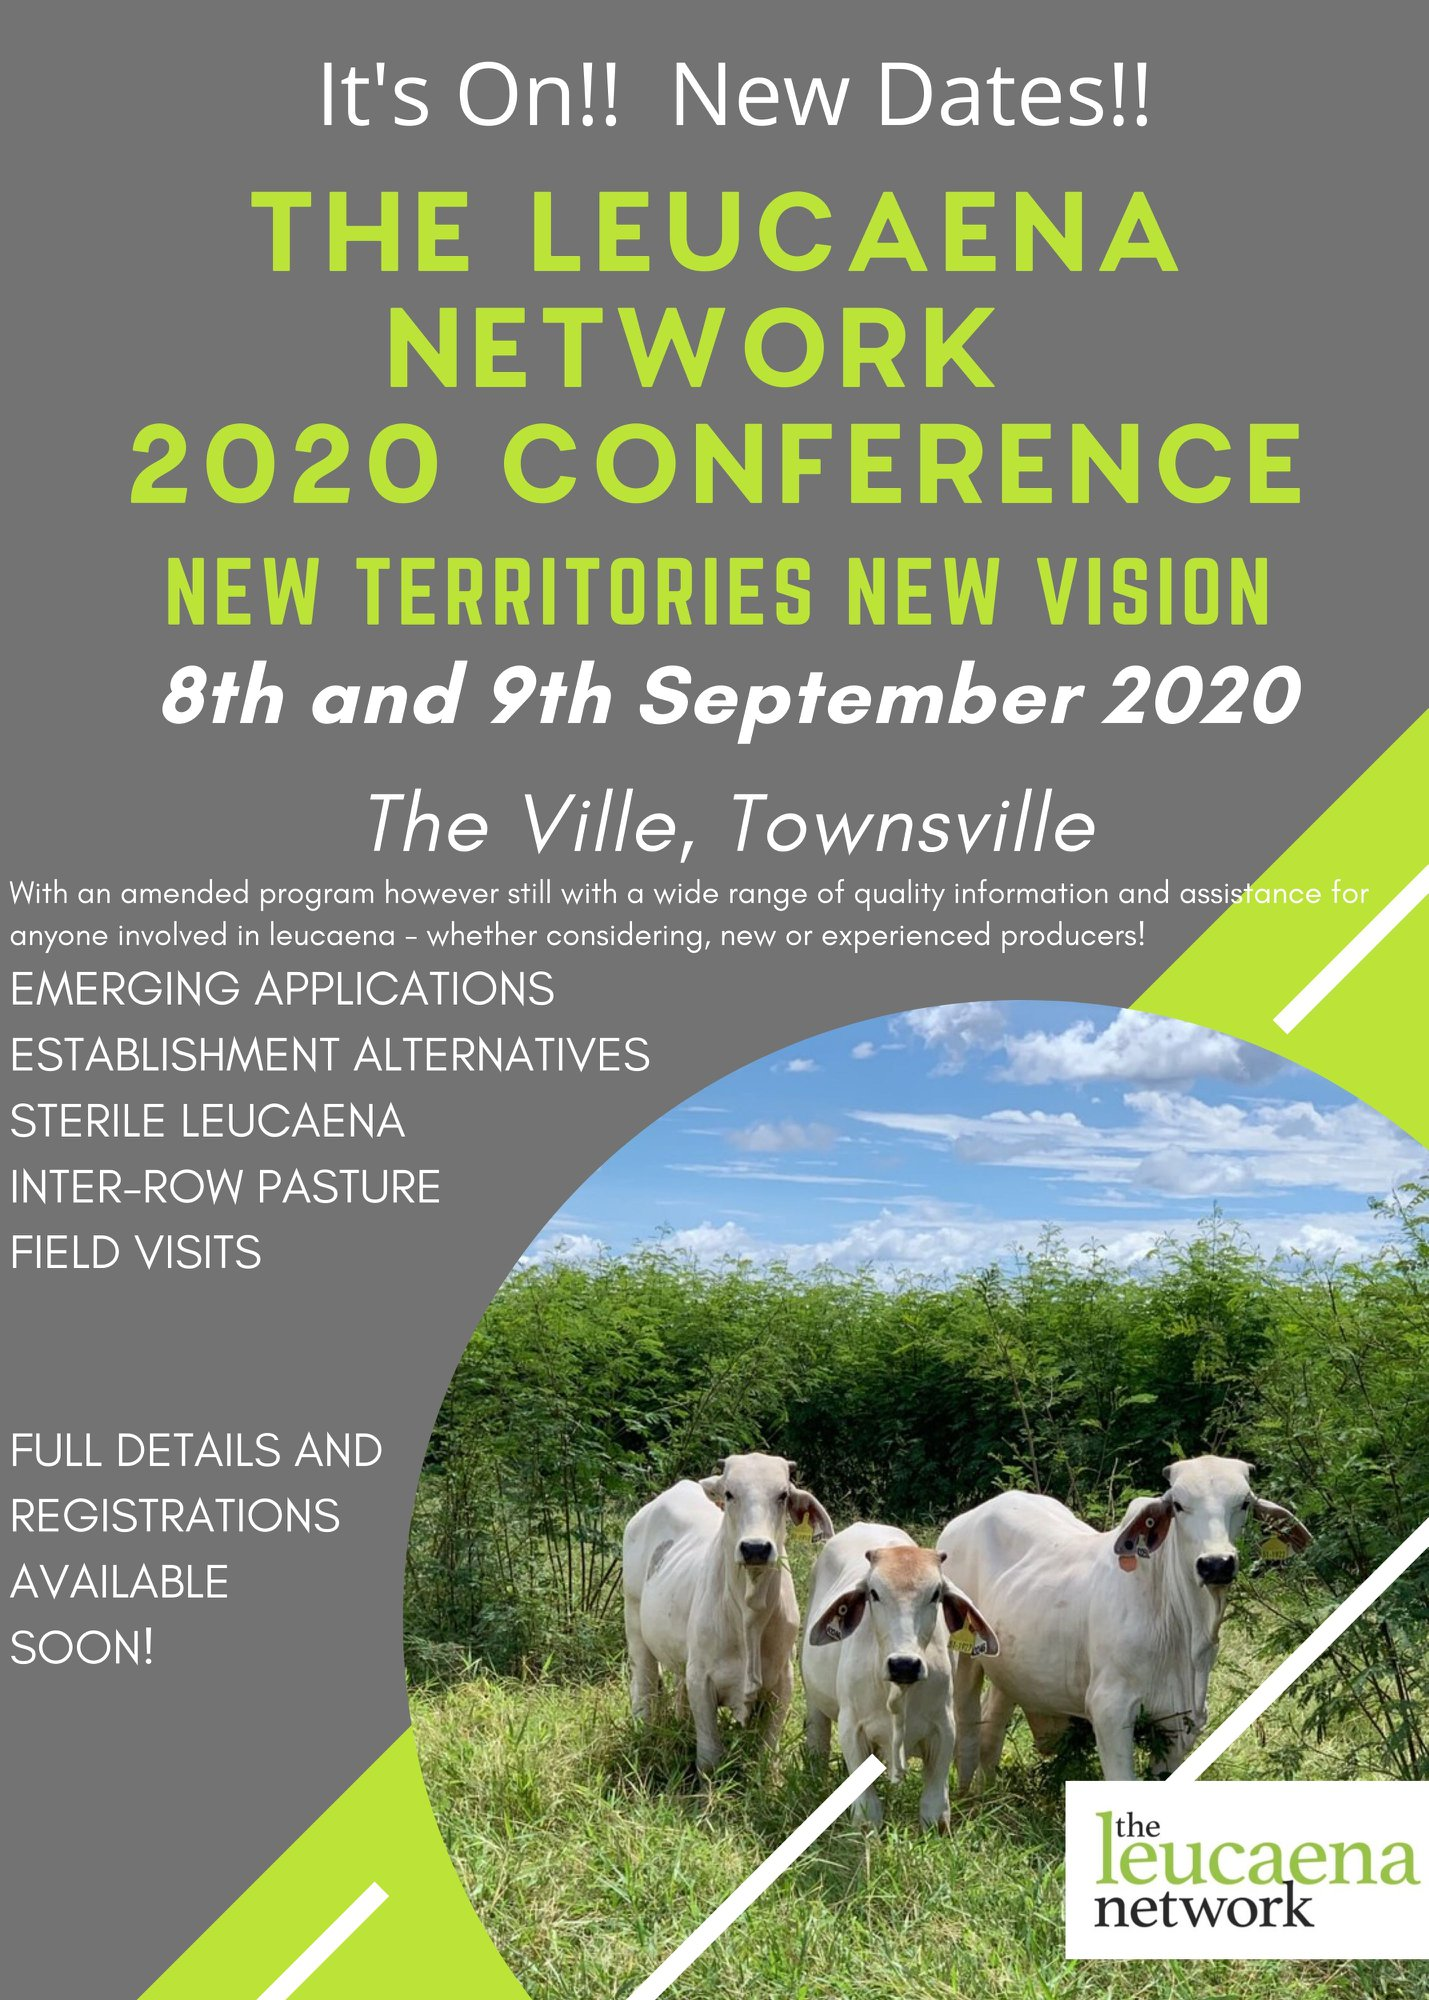 The Leucaena Network 2020 Conference flyer